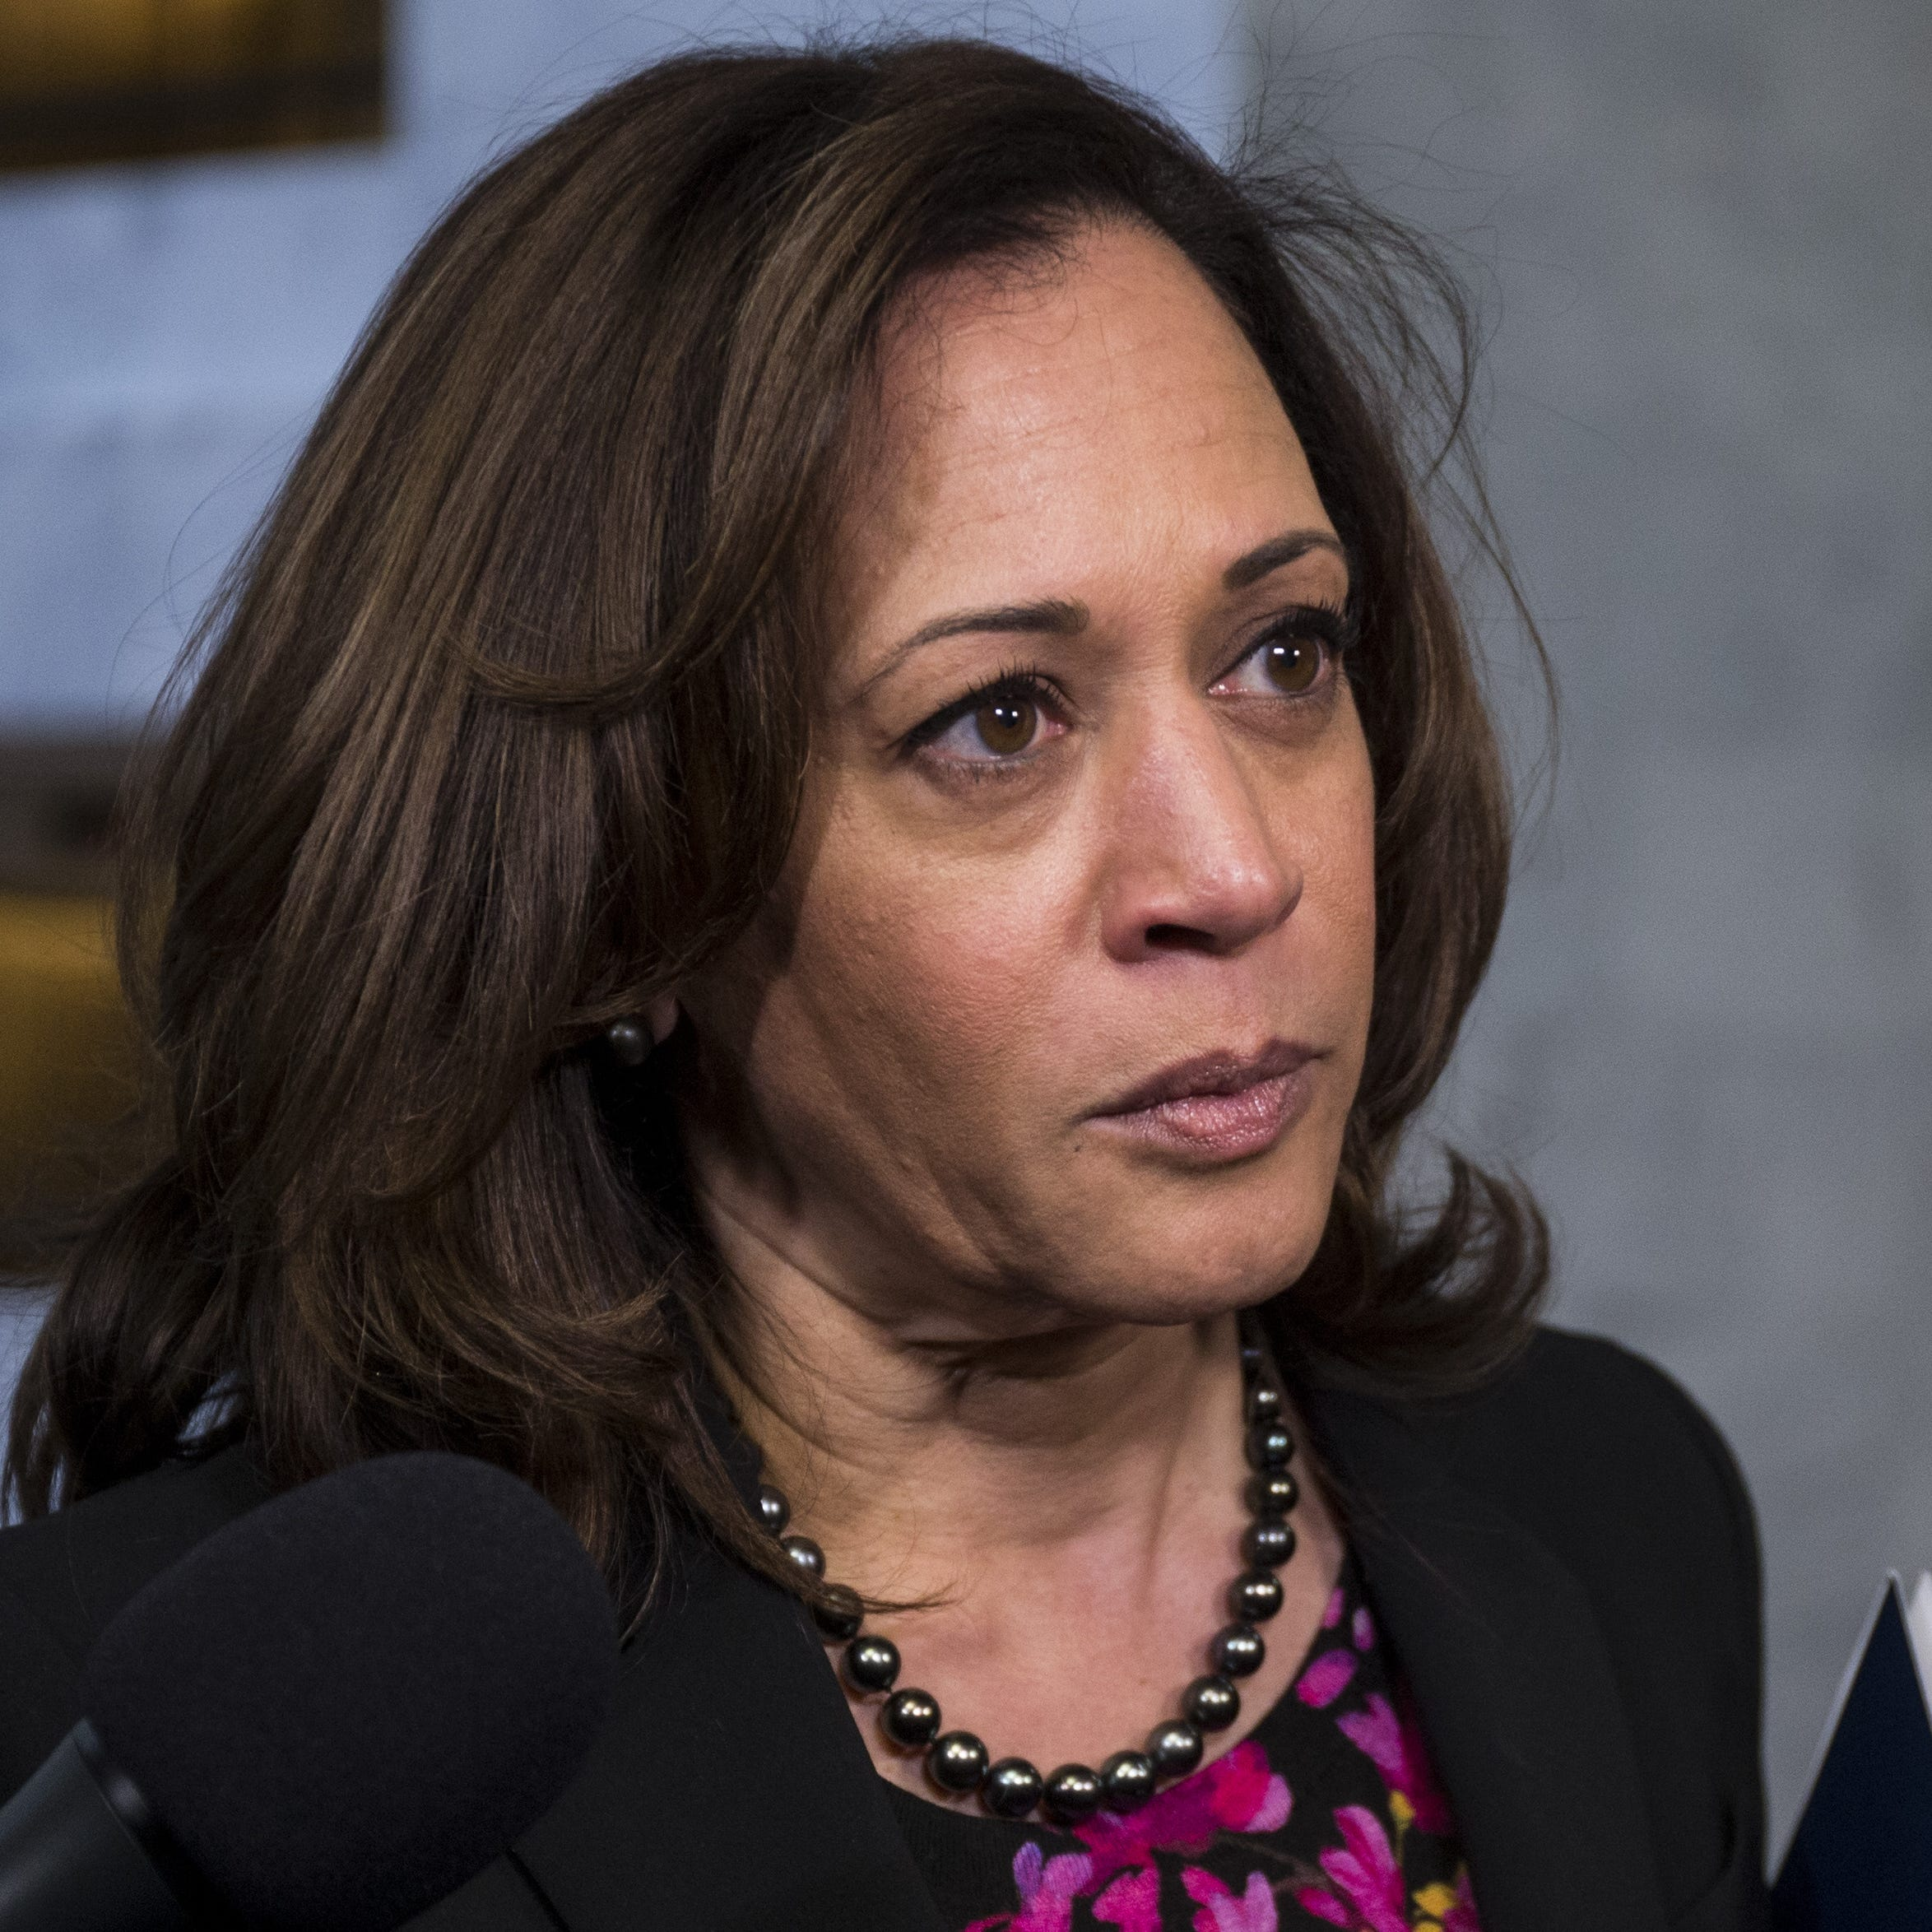 Sen. Kamala Harris, D-Calif., speaks to reporters following a closed briefing on intelligence matters on Capitol Hill on Dec. 4, 2018 in Washington.